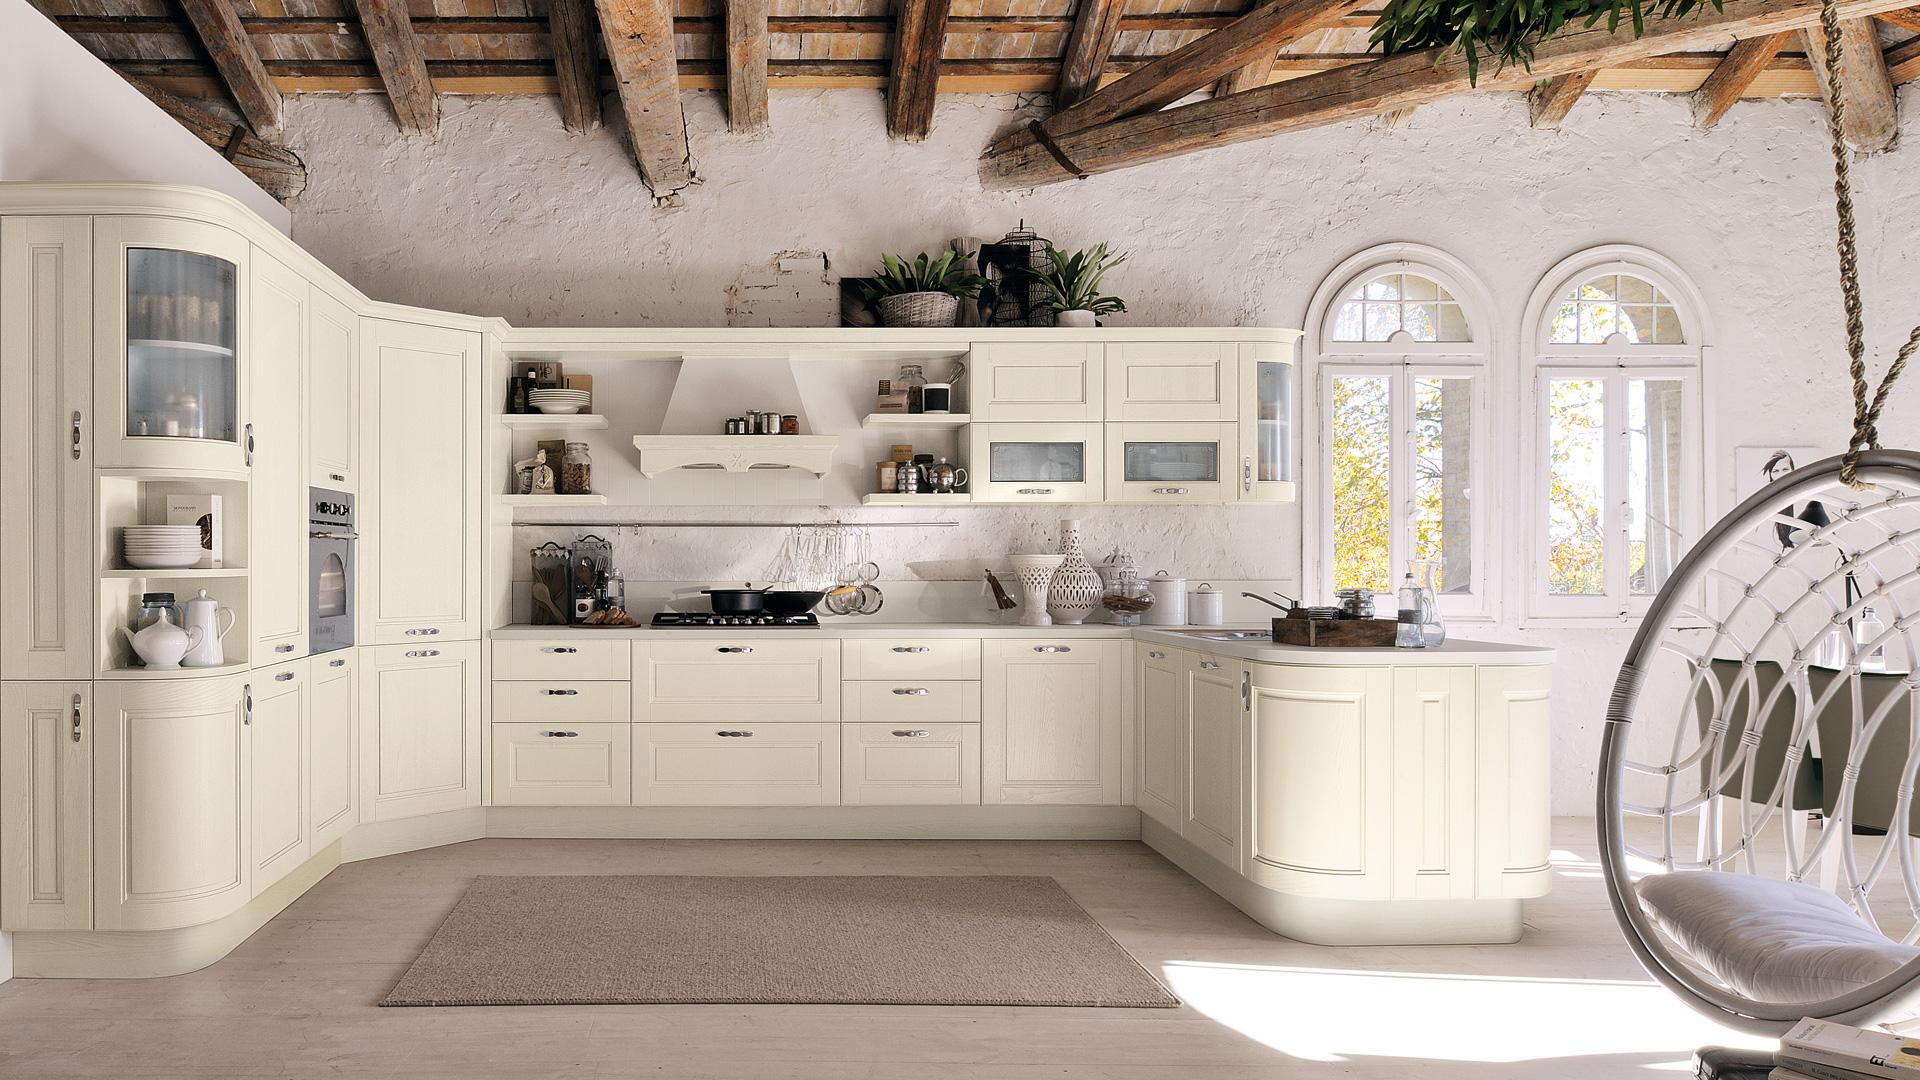 Cucine in stile provenzale le idee country chic per chi for Arredamento stile country provenzale